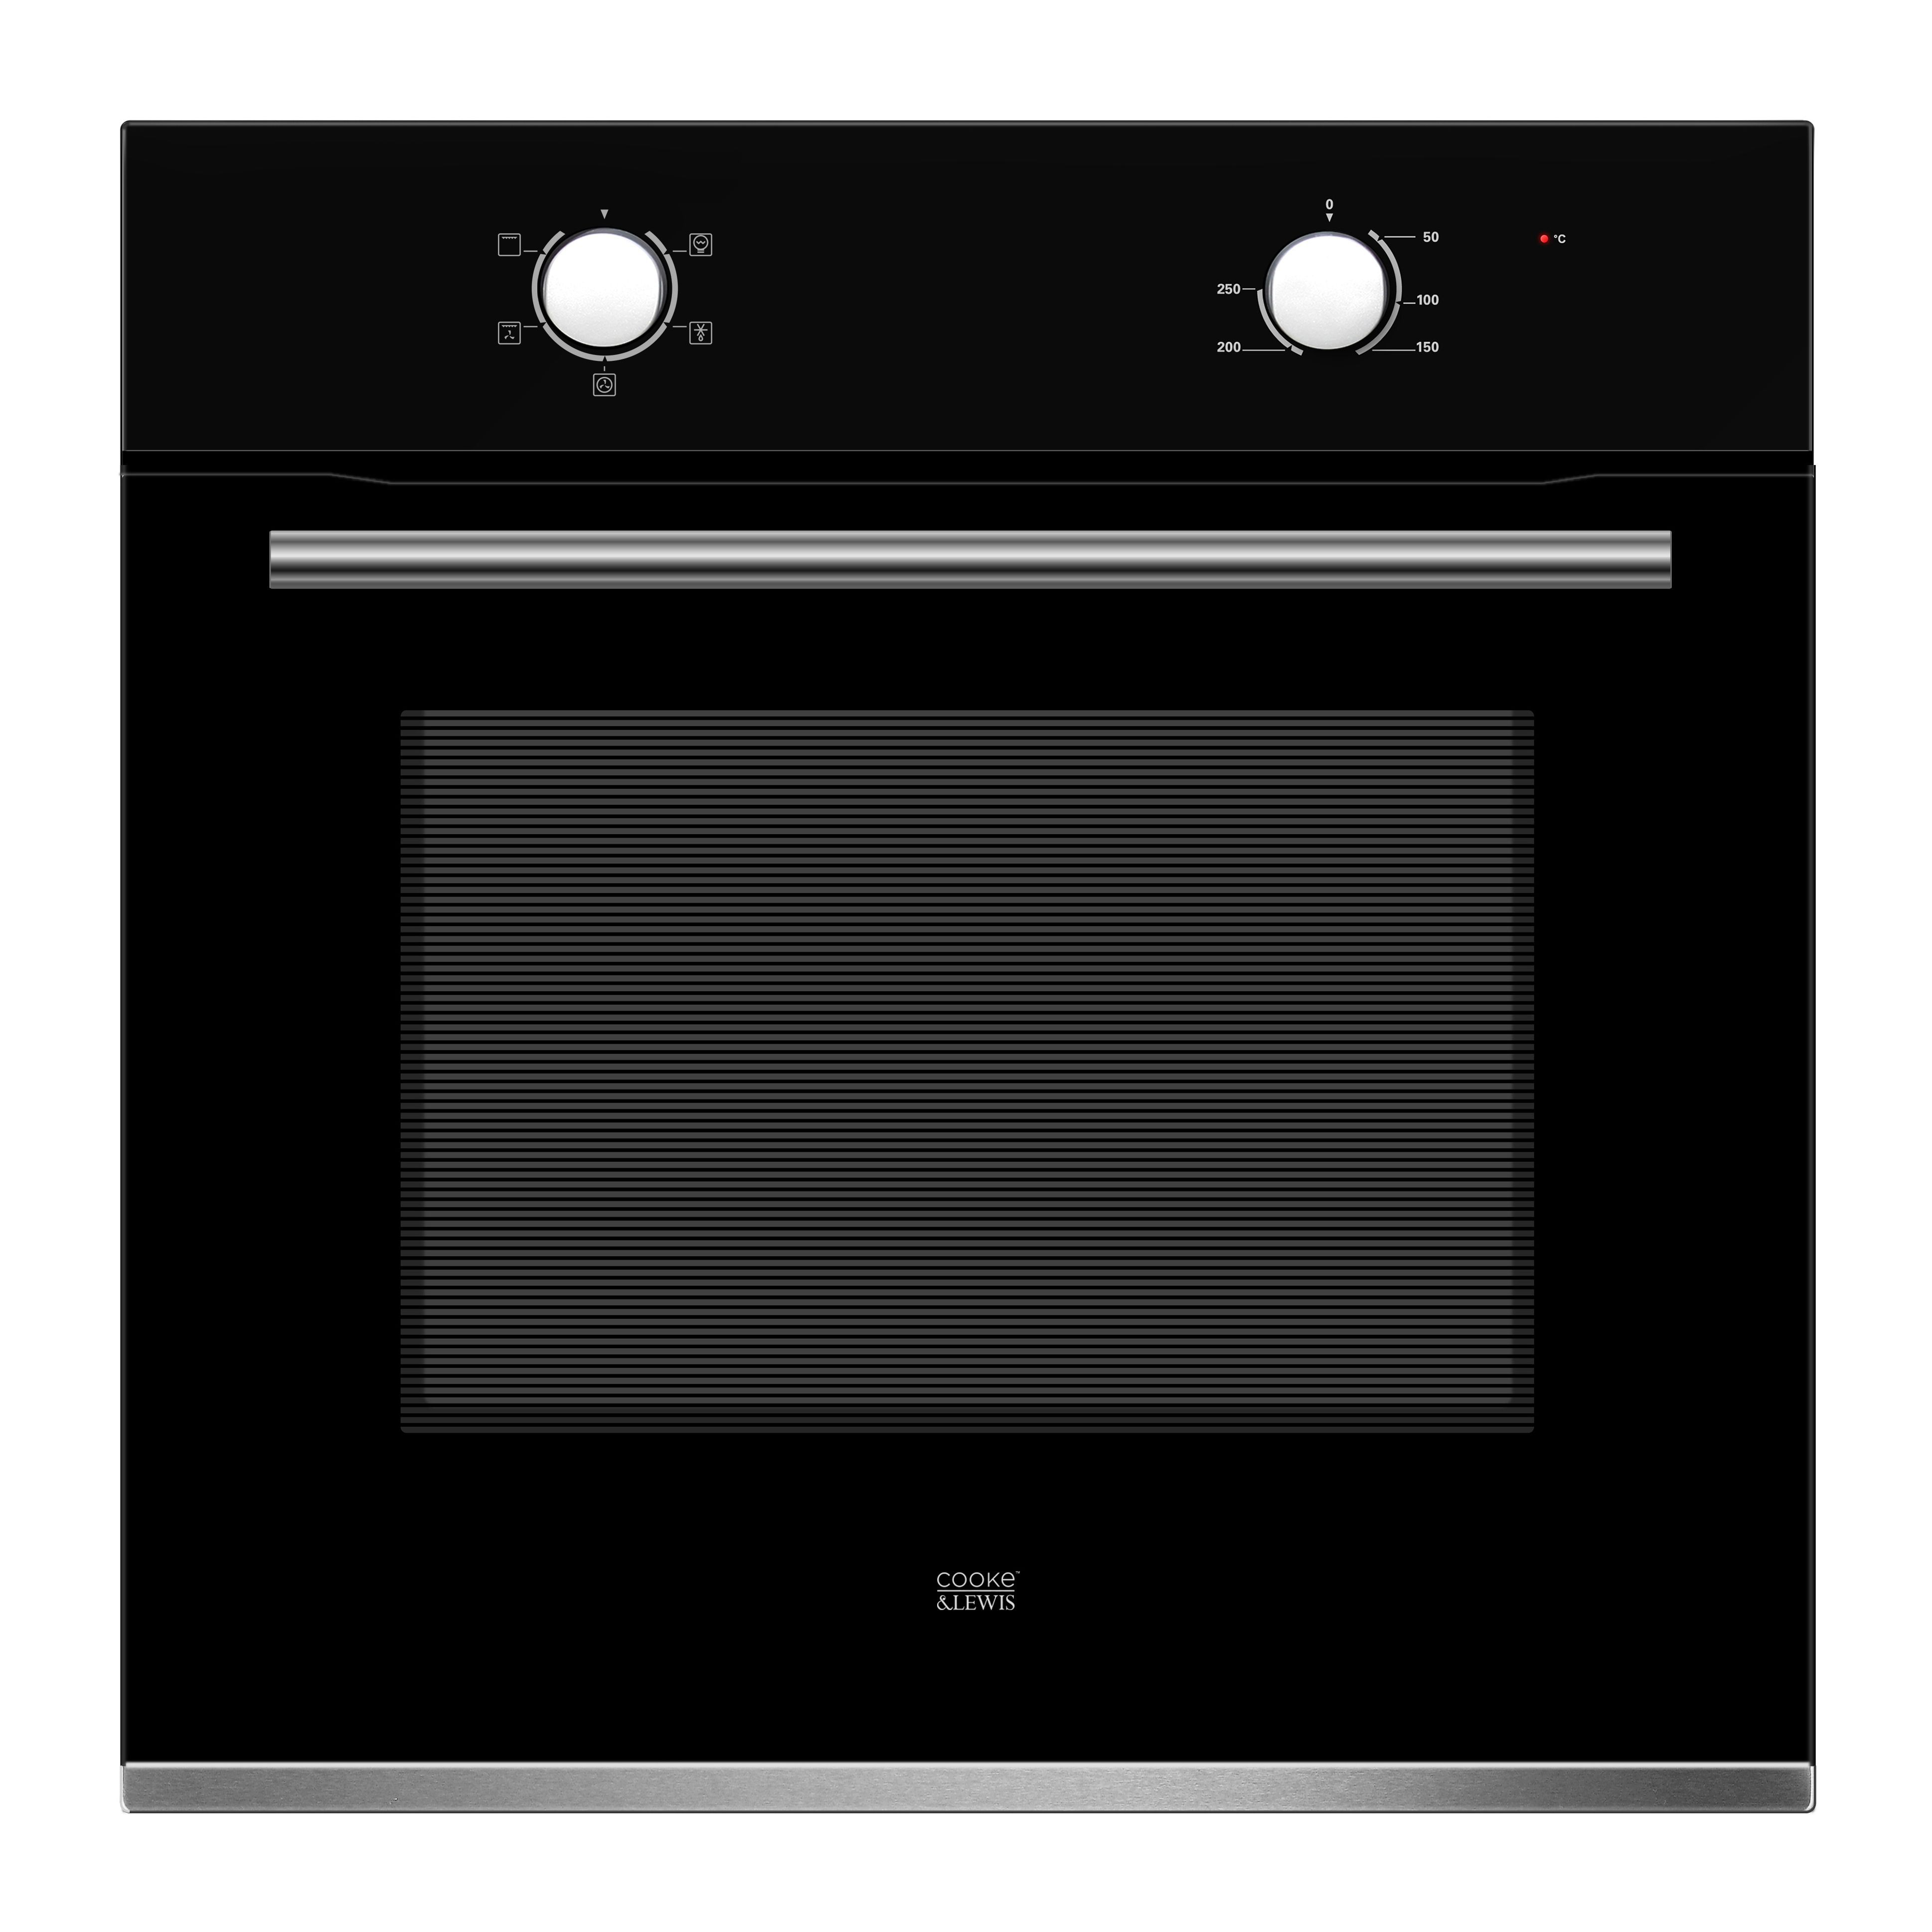 Cooke Lewis Clfnbk60 Black Electric Single Single Oven Departments Diy At B Q